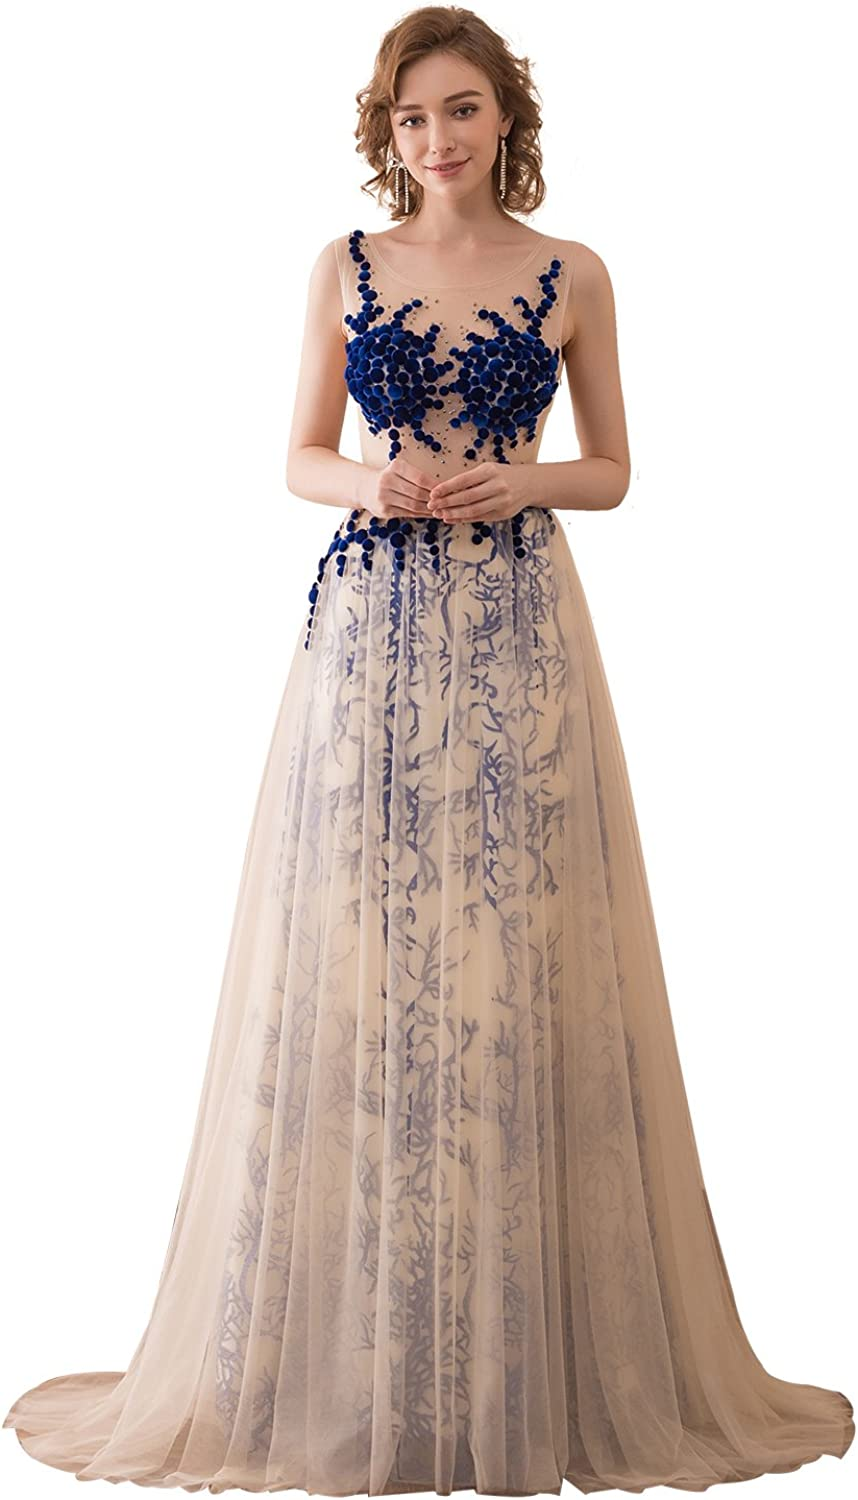 Epinkbridal Sleeveless Lace Evening Formal Dress with Illusion Bodice Long Prom Gowns